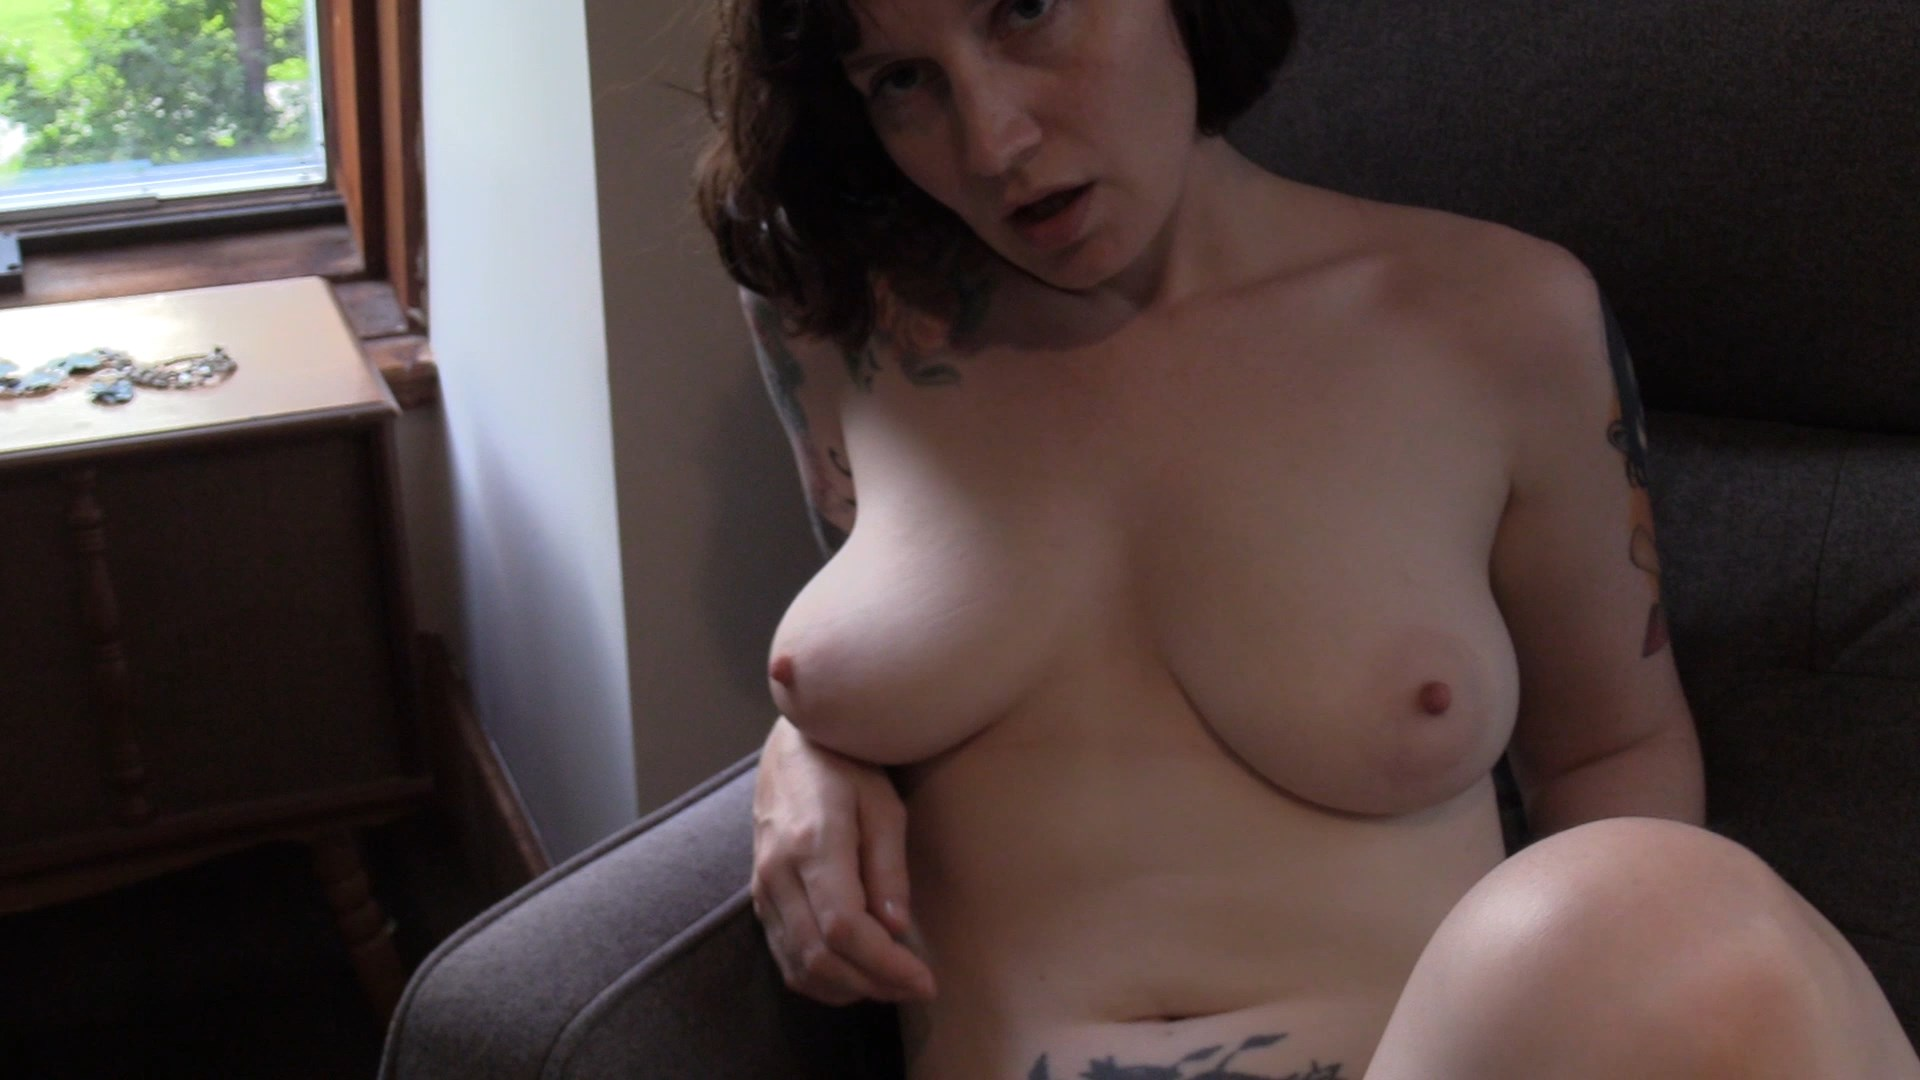 Bettie Bondage - Mom's Breastfeeding Confession